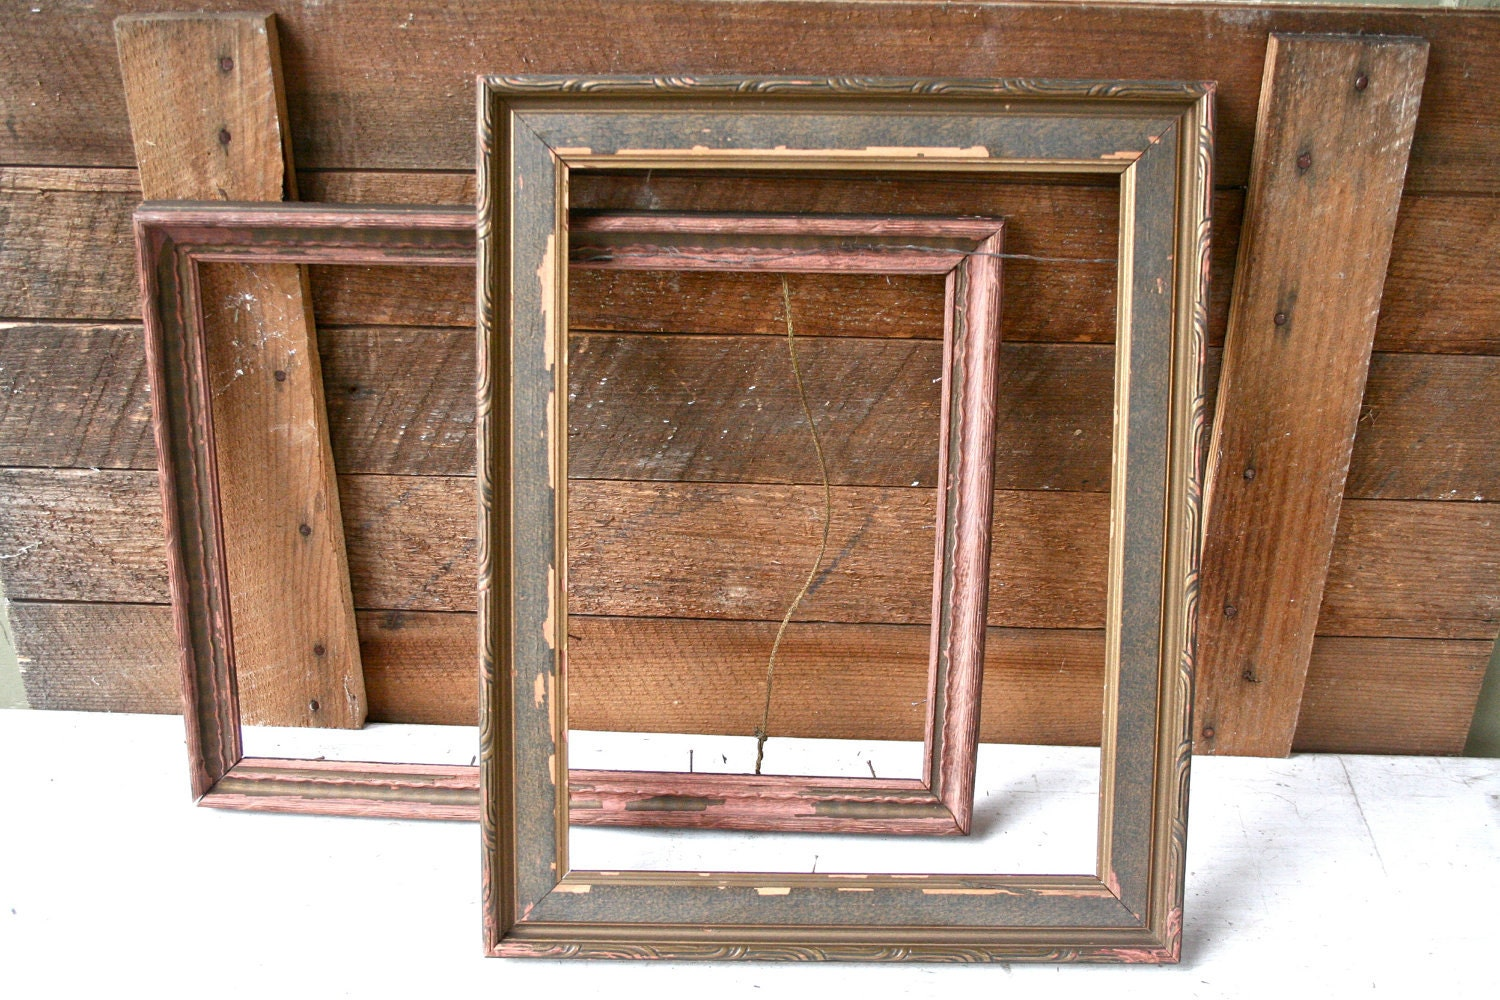 8x10 barbed wire rustic barnwood barn wood photo frame | eBay |Rustic Wooden Picture Frame